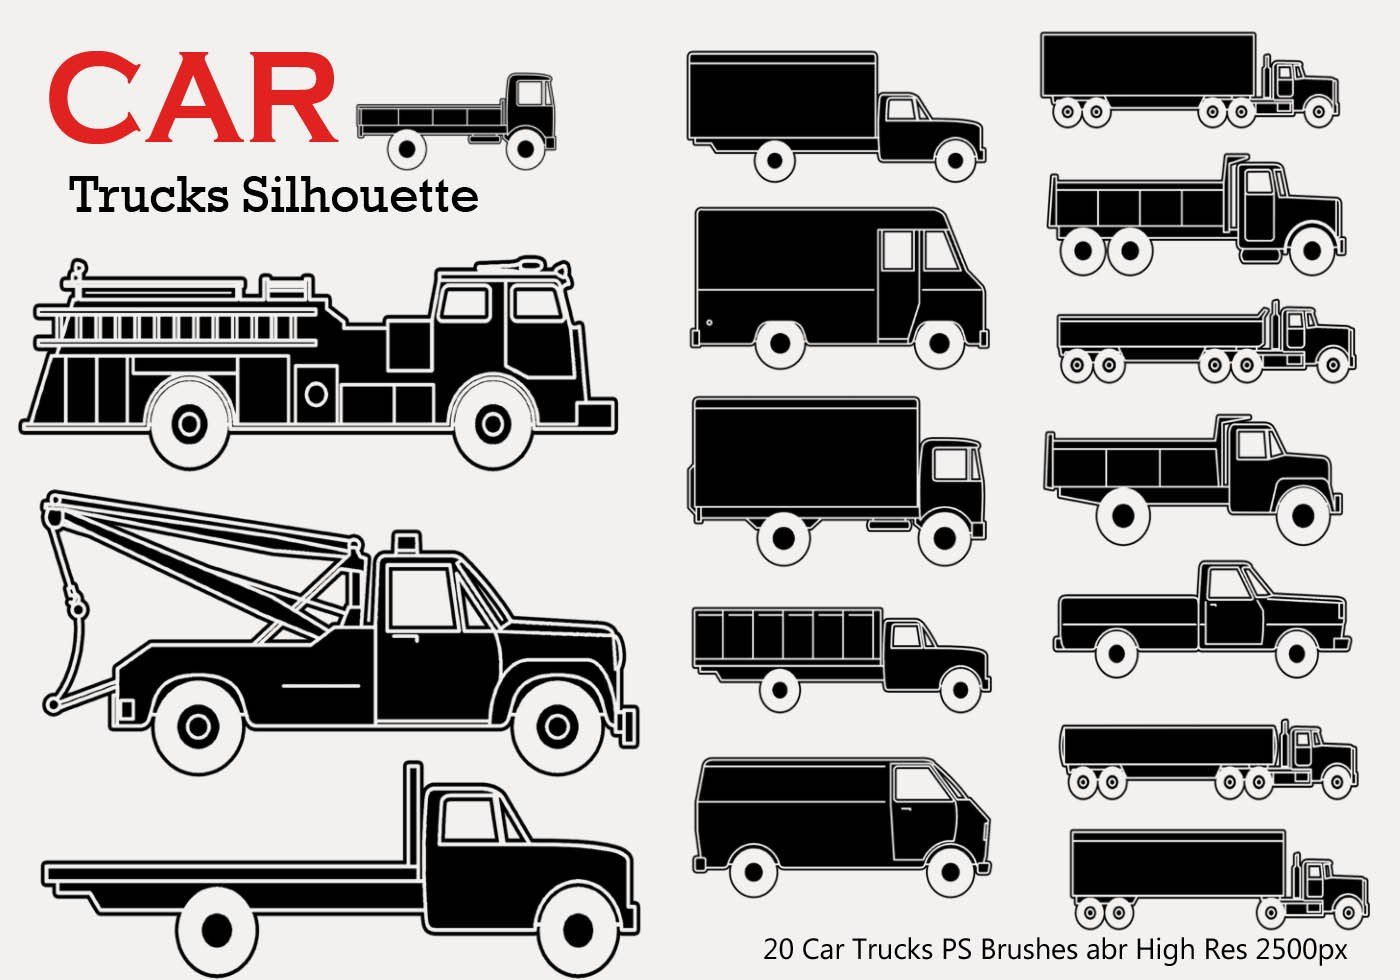 Latest 20 Car Truck Silhouette Ps Brushes Free Photoshop Free Download Original 1024 x 768